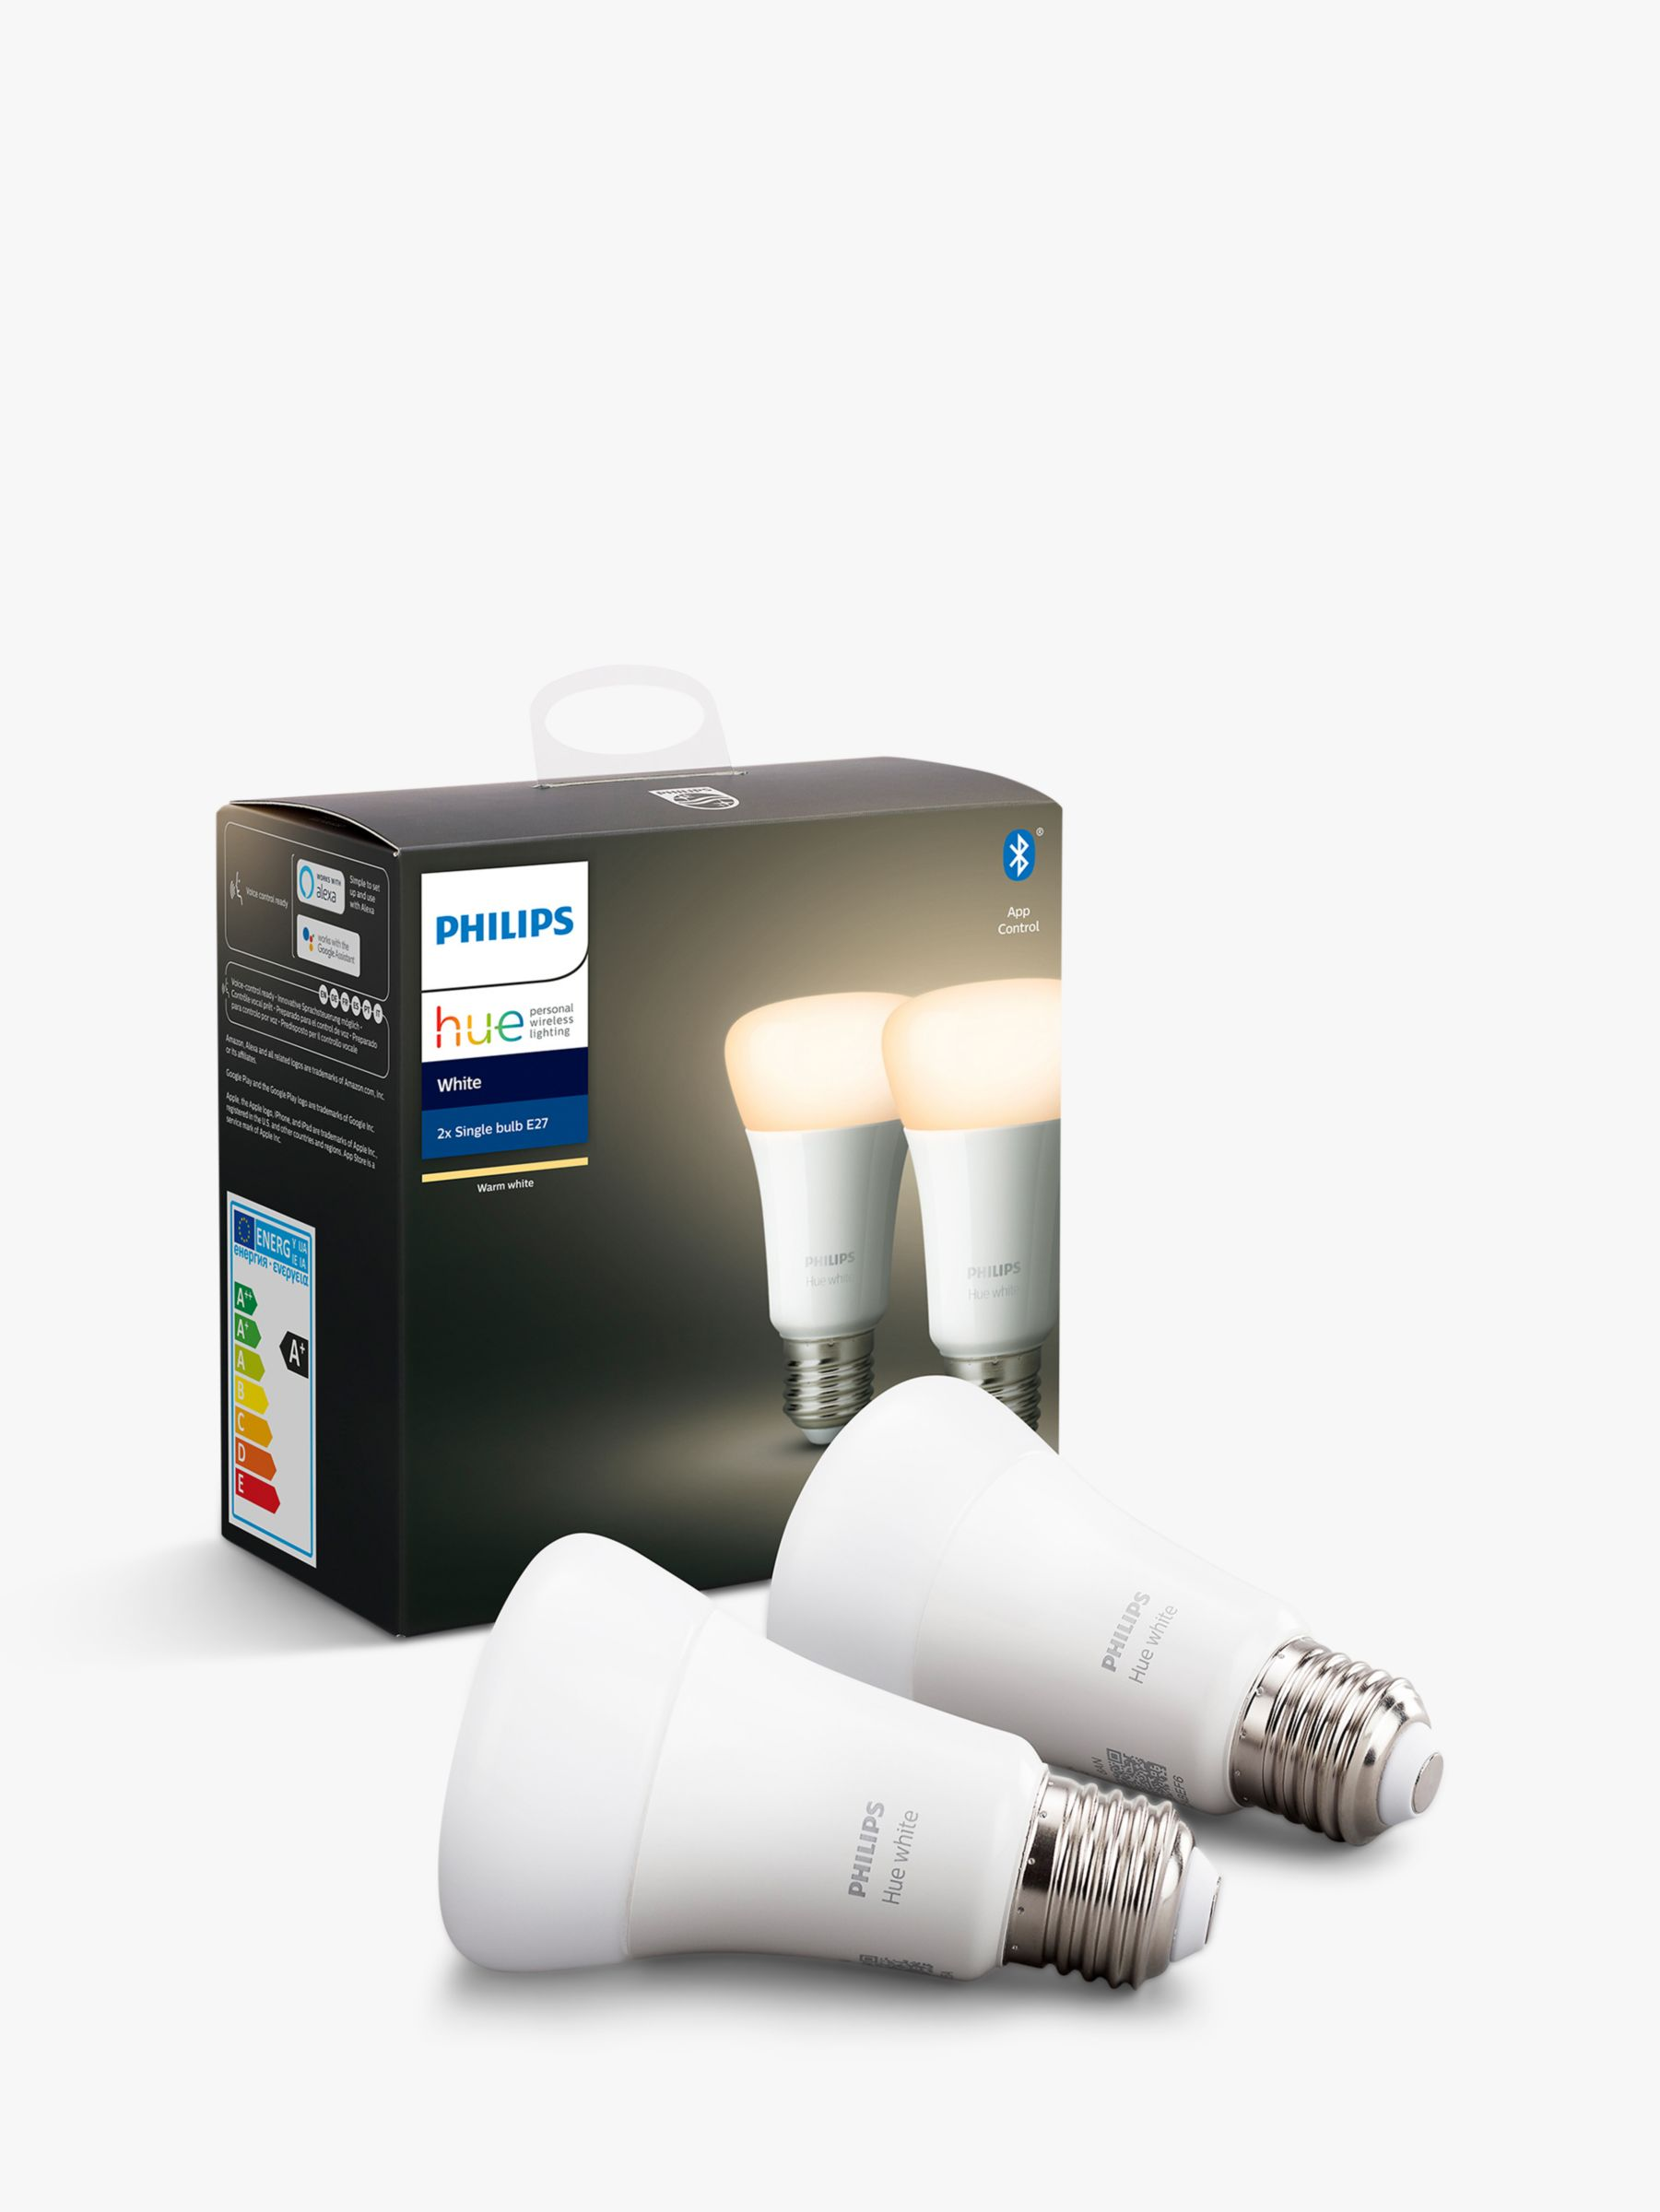 Philips Philips Hue White Wireless Lighting LED Light Bulb with Bluetooth, 9W A60 E27 Edison Screw Cap Bulb, Pack of 2